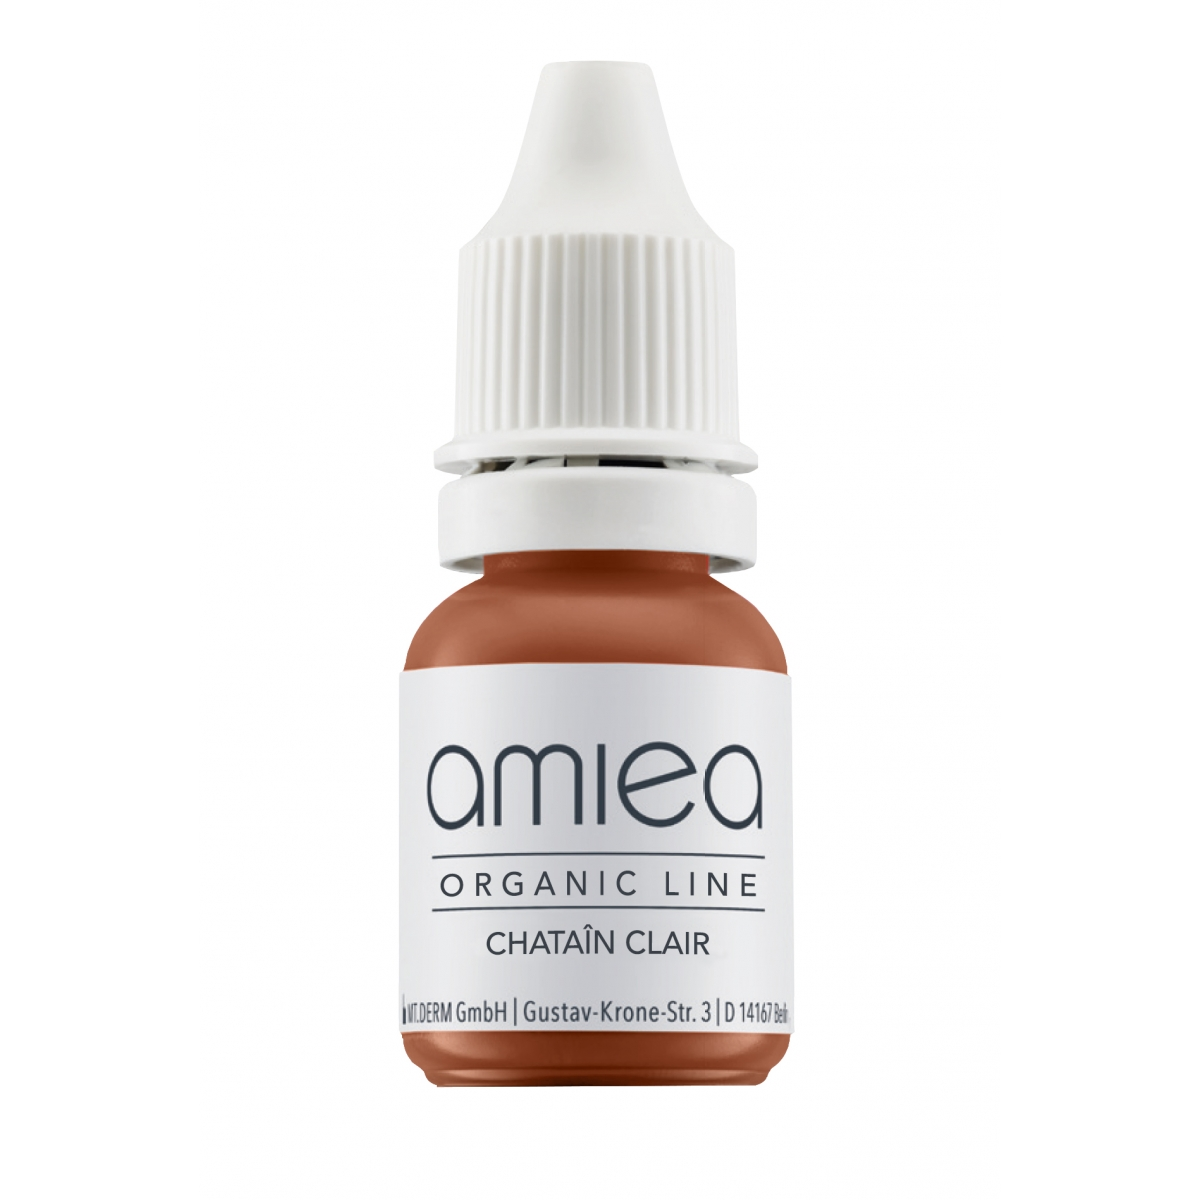 ORGANIC LINE (10ml) - PIGMENT CHATAIN CLAIR ORGANICLINE AMIEA (10 ml)